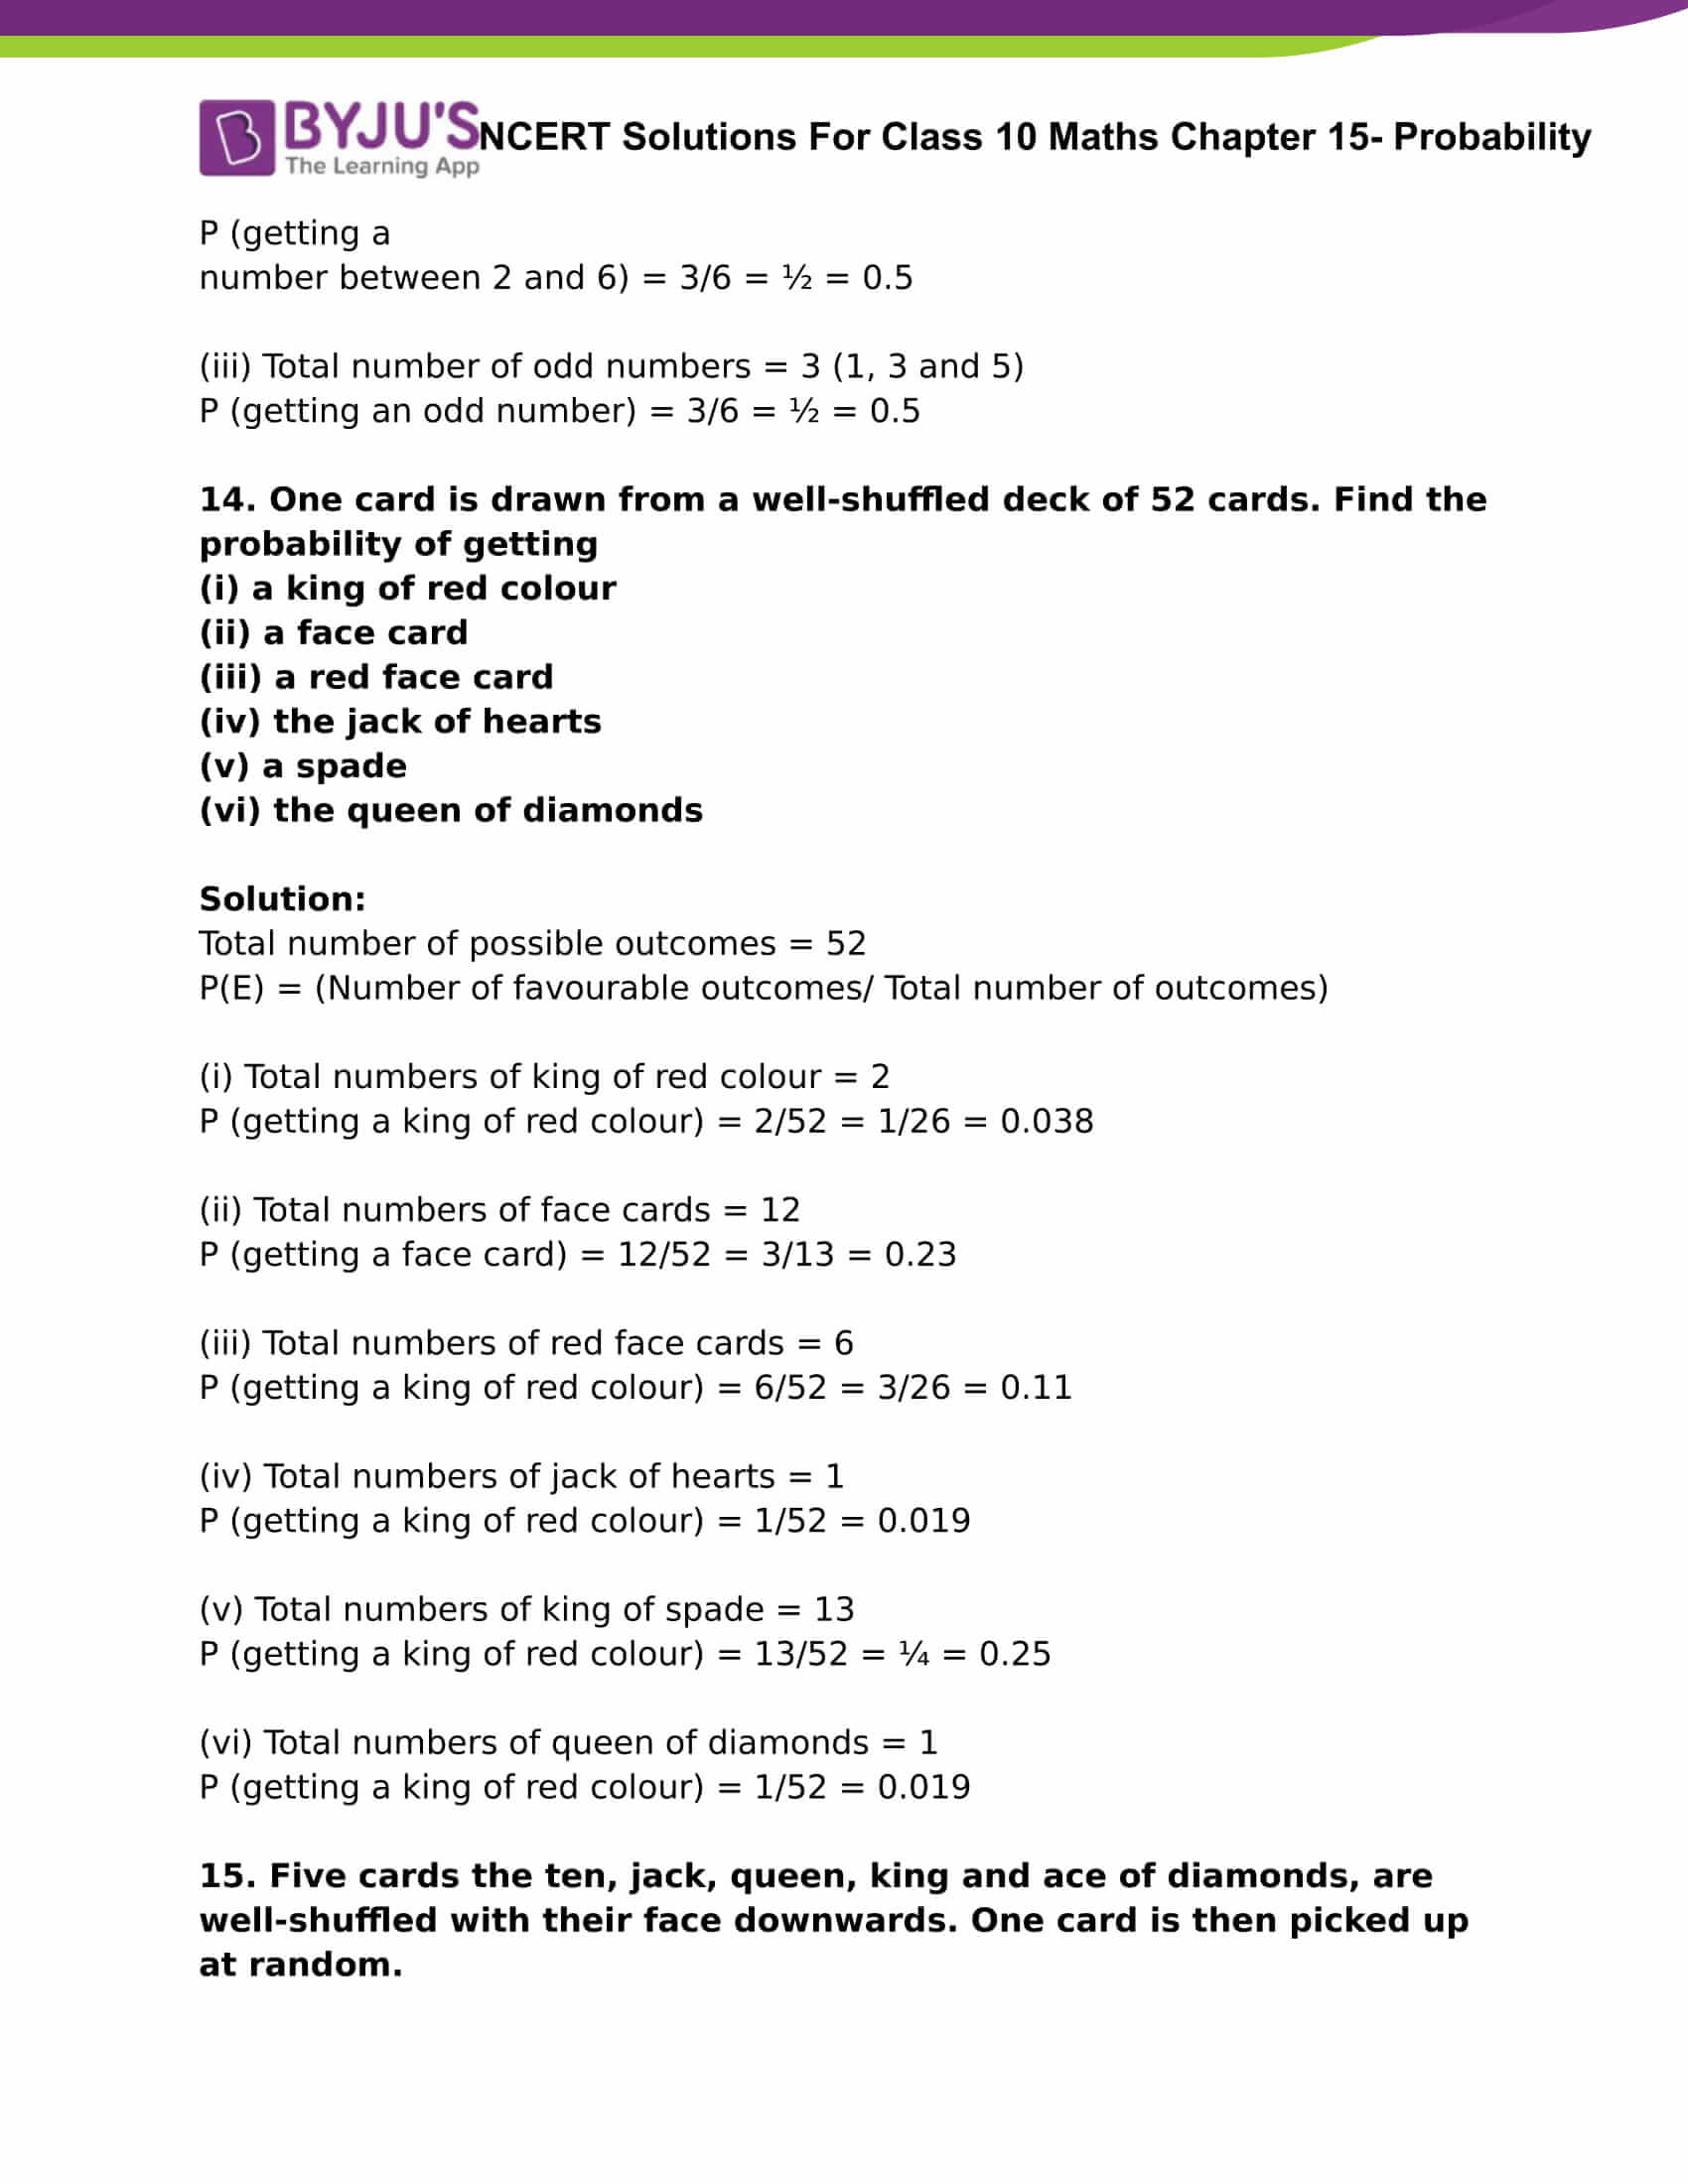 NCERT Solutions For Class 10 Maths Chapter 15 Probability Part 07